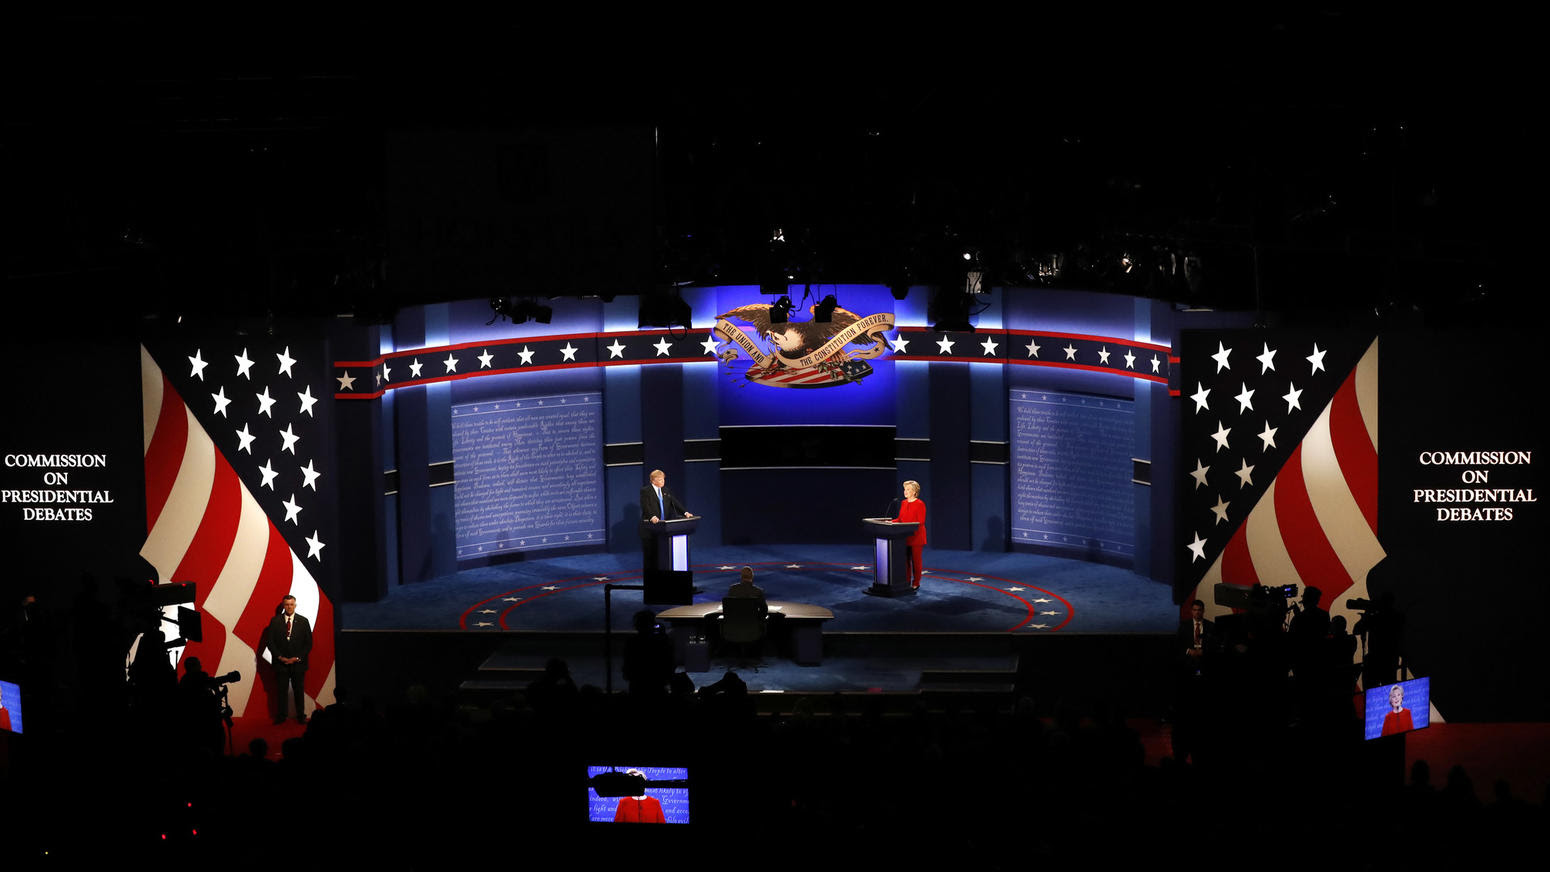 Presidential_Debate_Photo.jpg